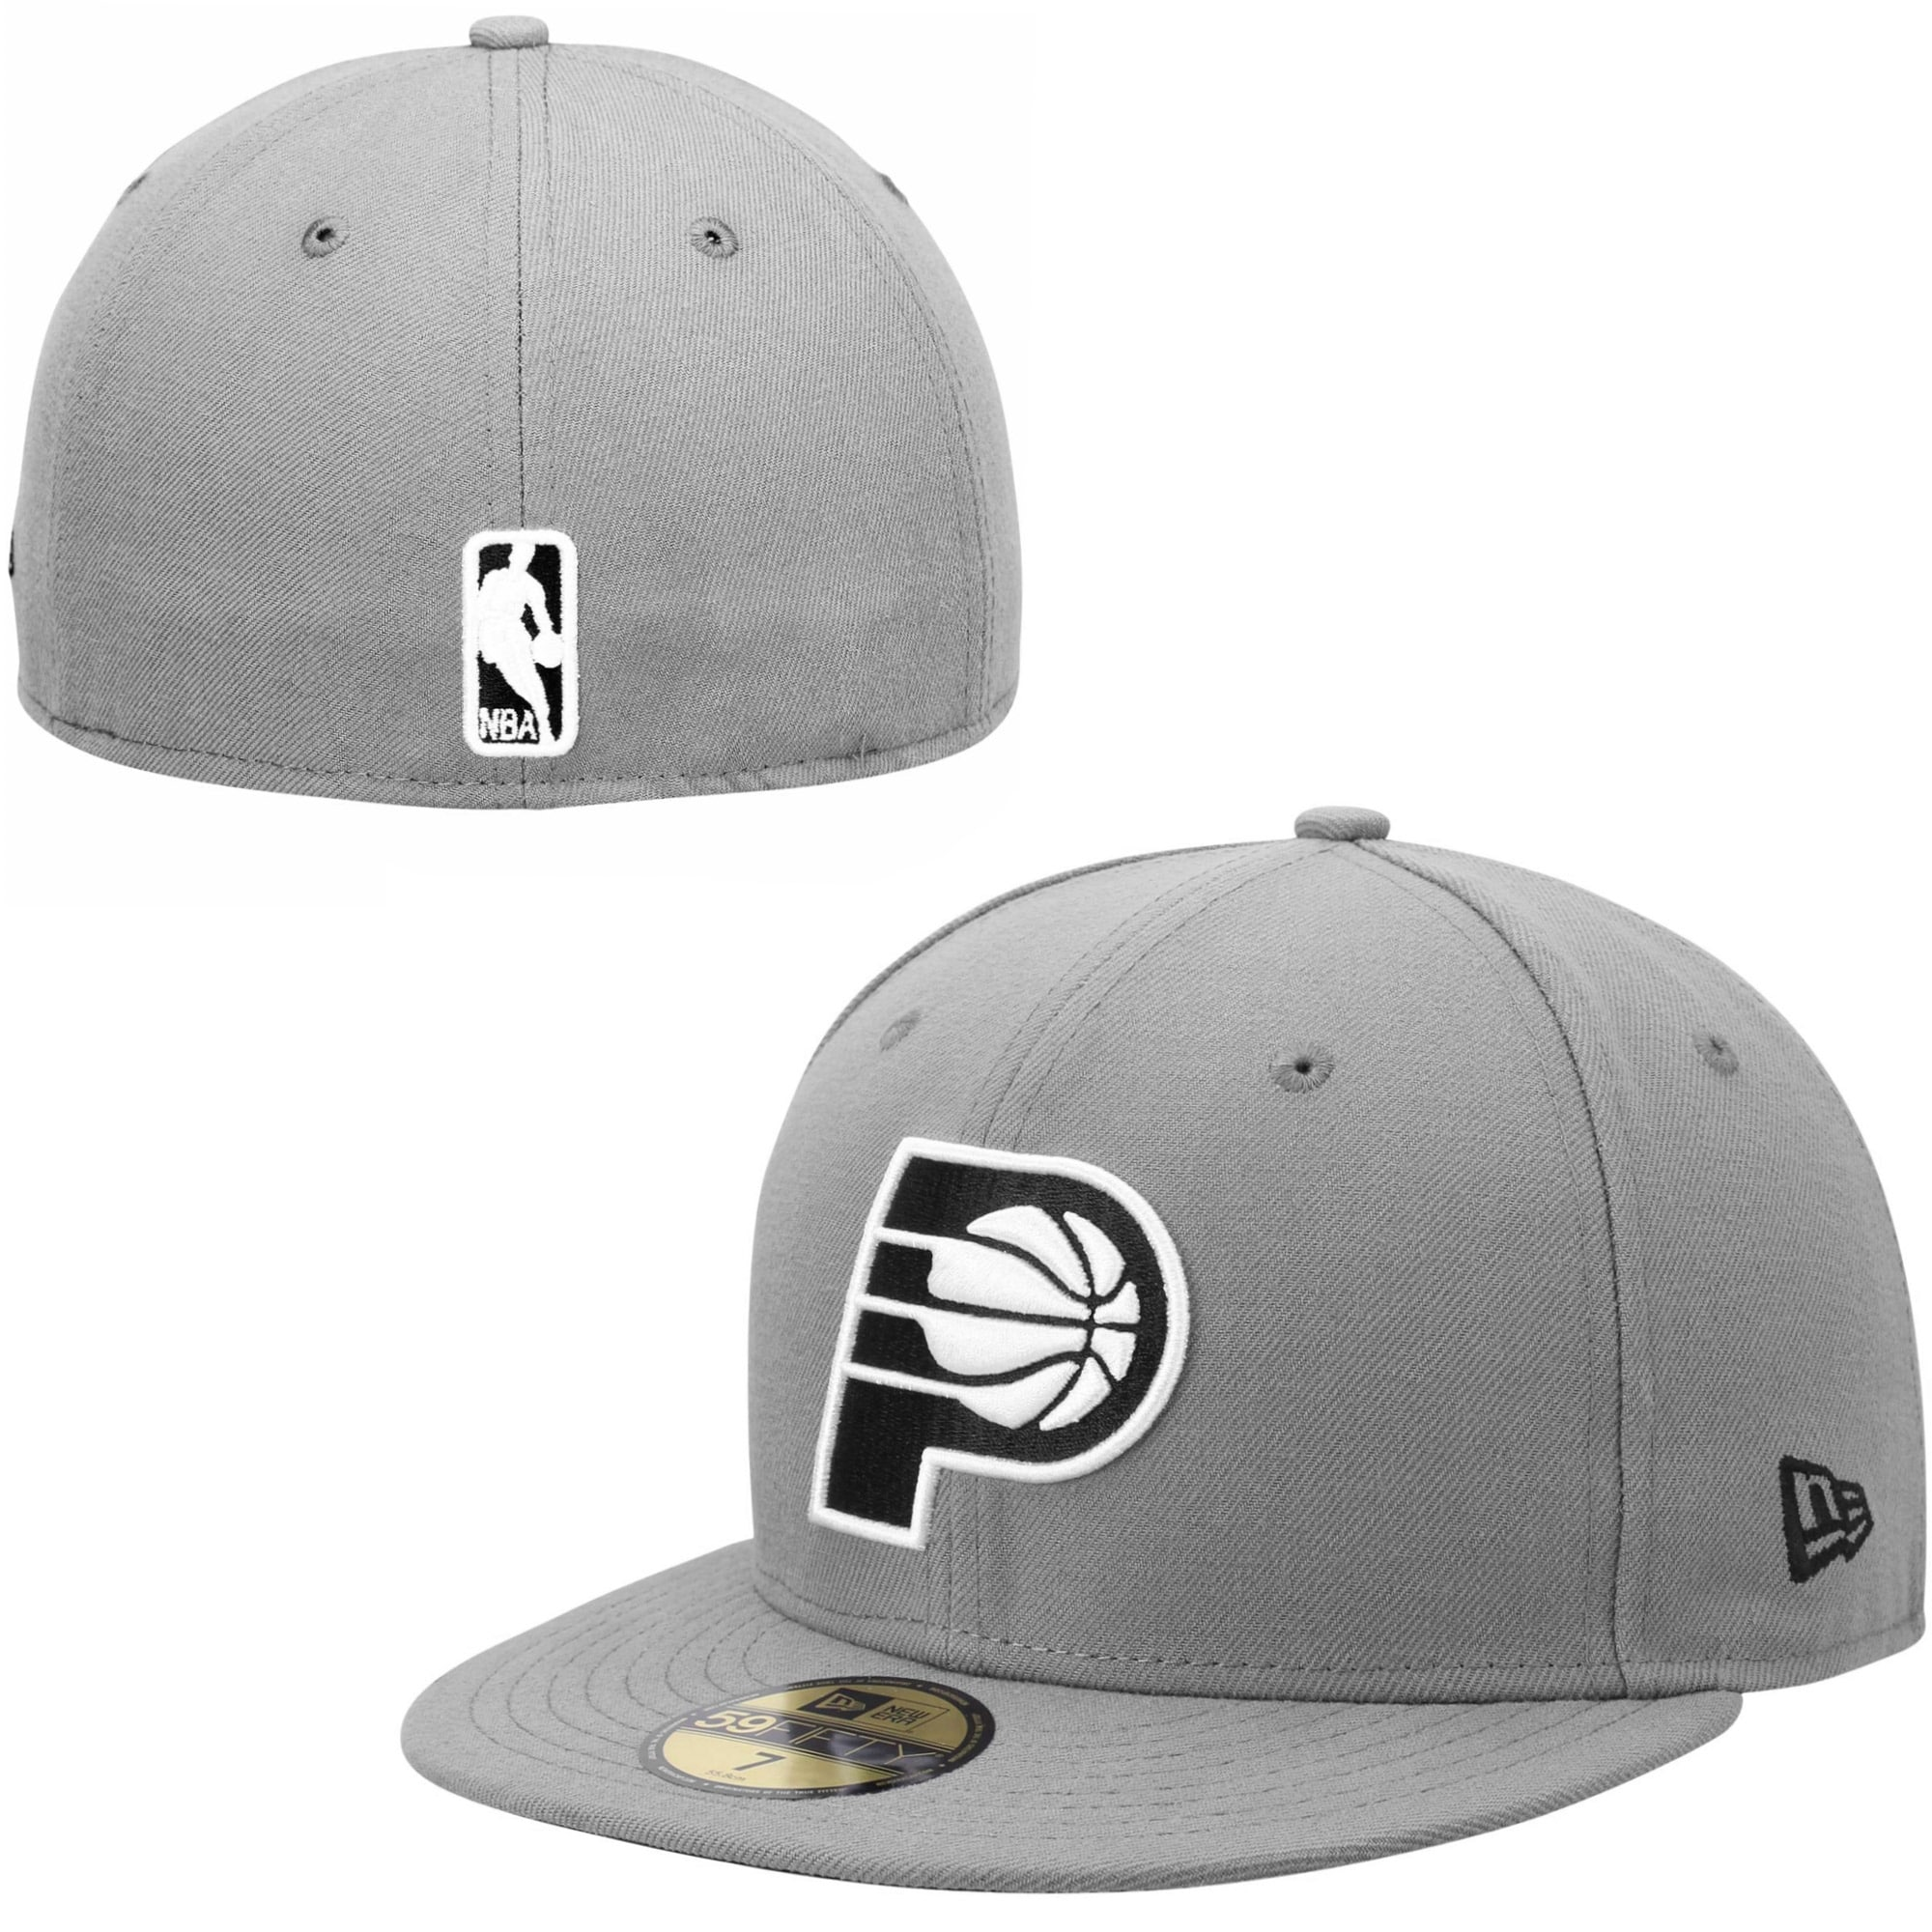 Indiana Pacers New Era 59FIFTY Fitted Hat - Gray/Black